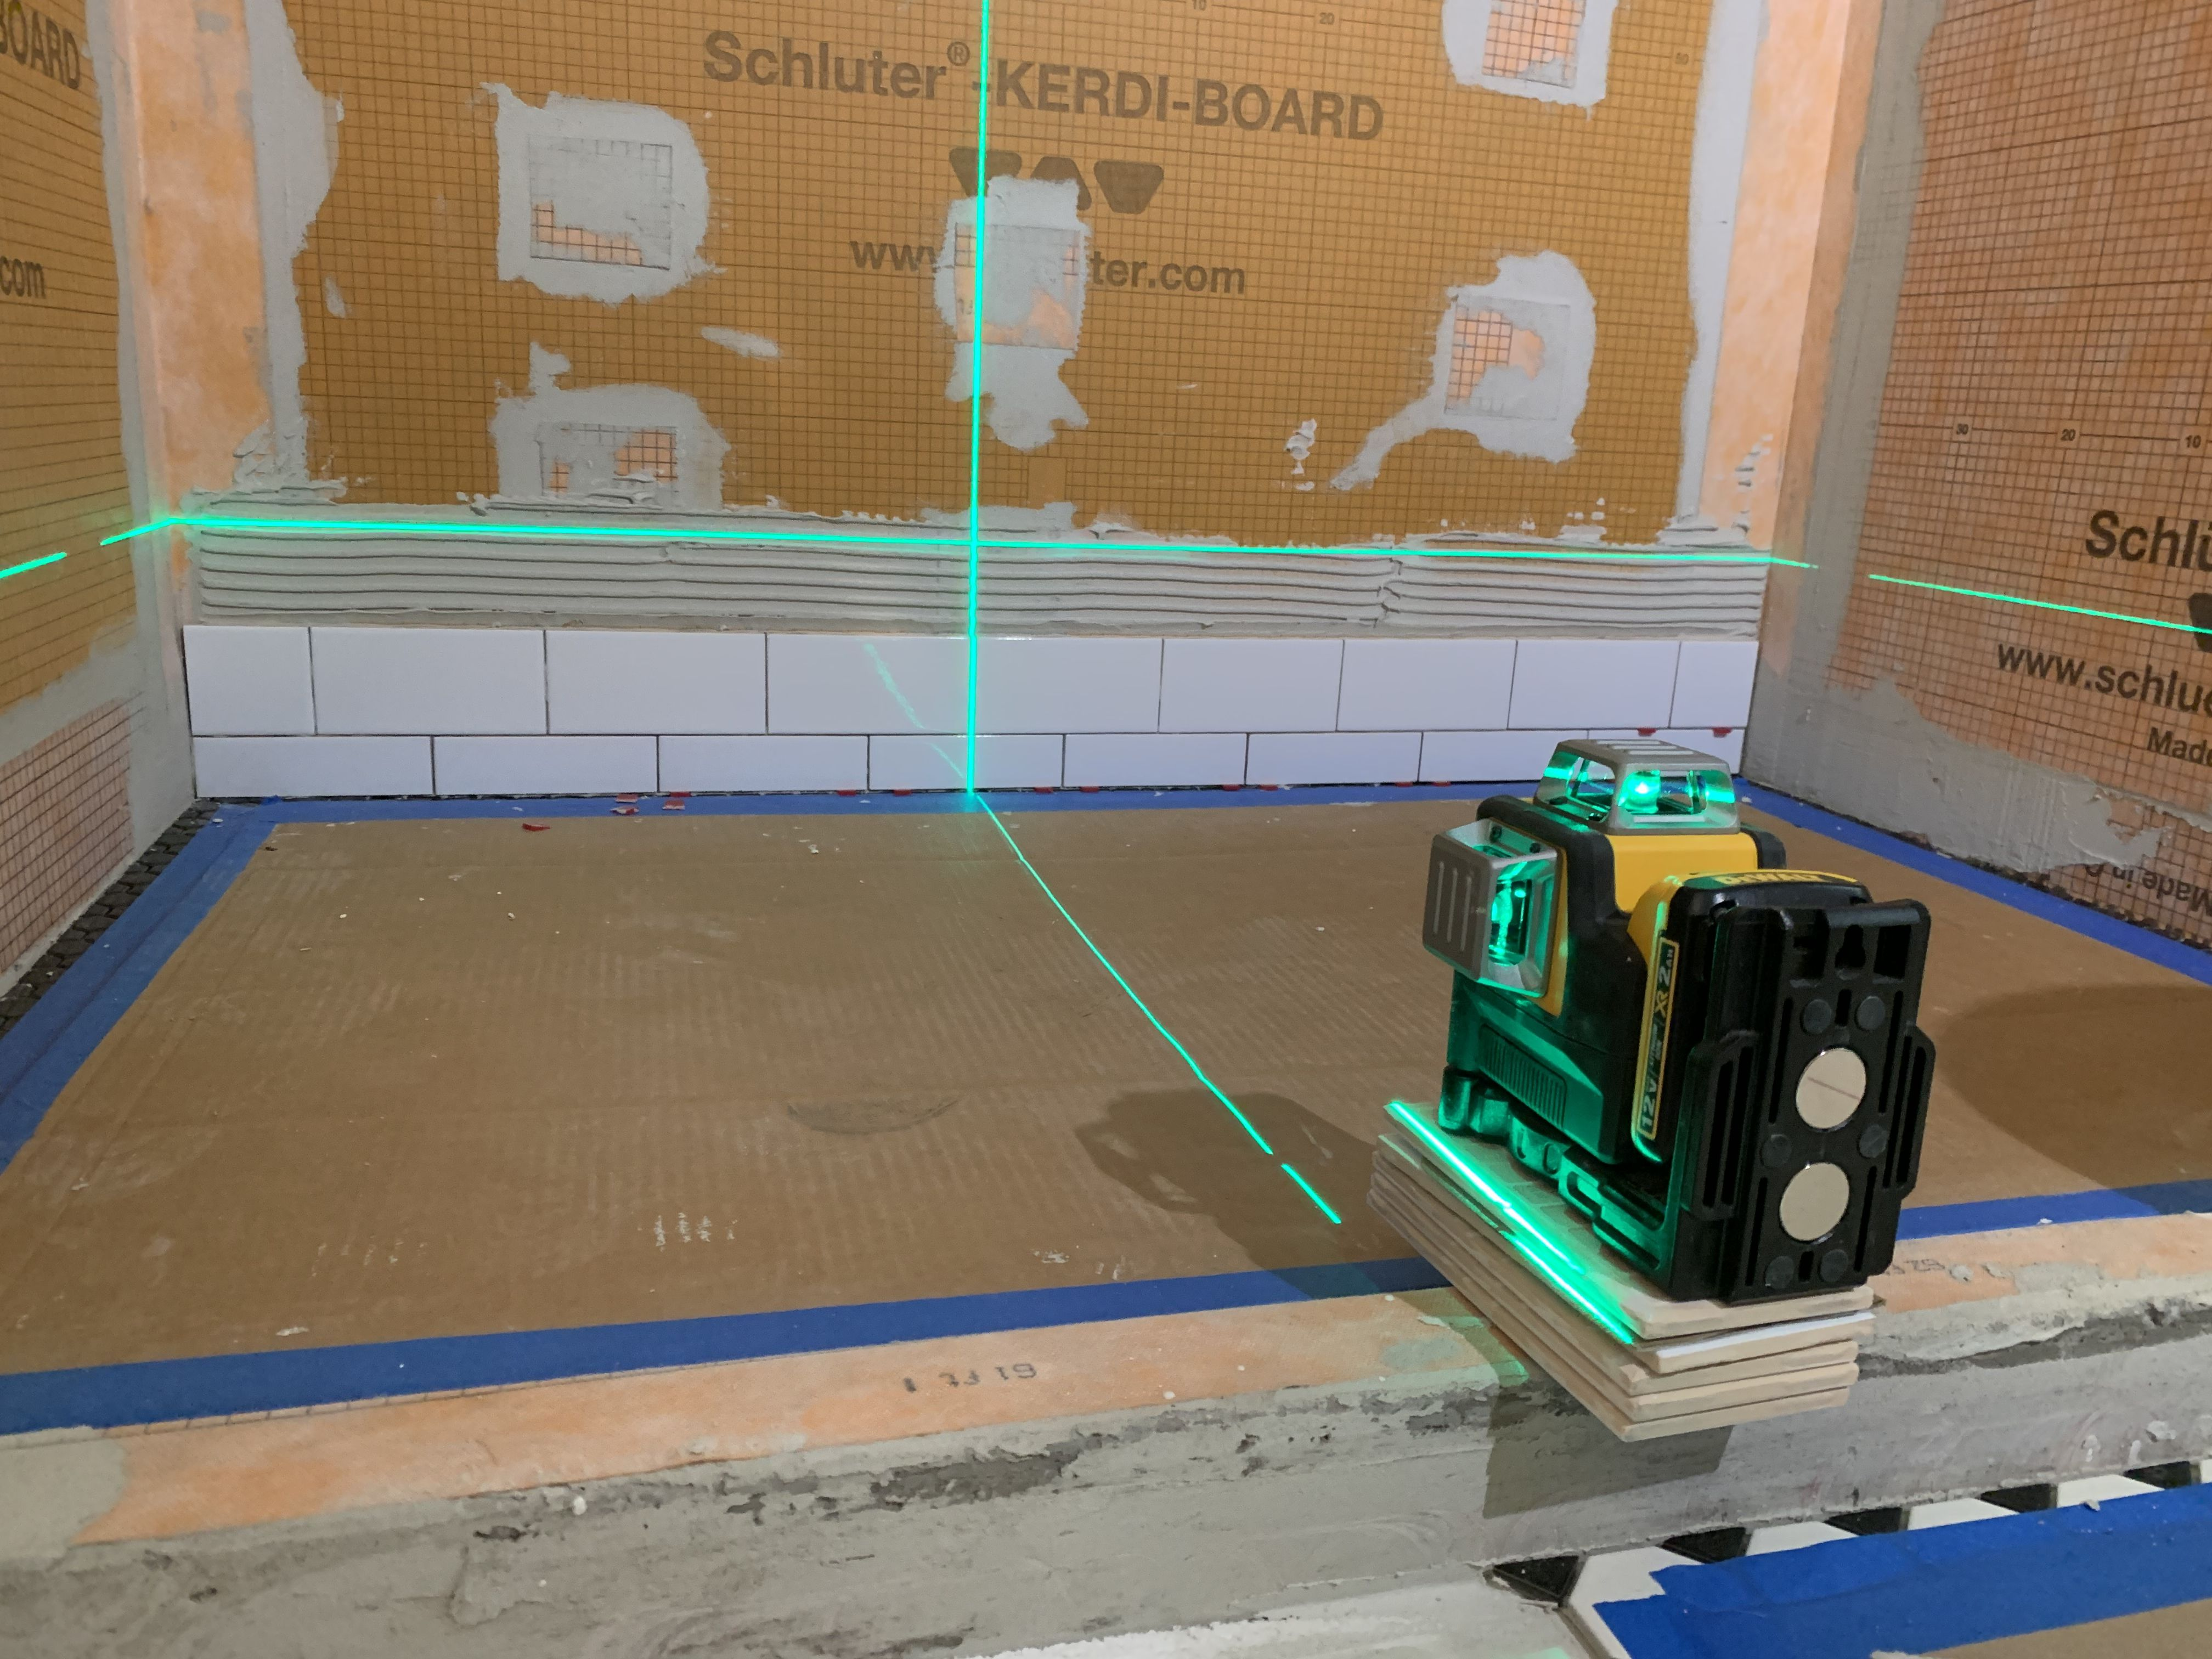 Get Crisp Clean Lines For Tile Framing Cabinet Hanging And Construction Projects With This Dewalt Laser Level Thi Laser Levels Tile Layout Tile Installation